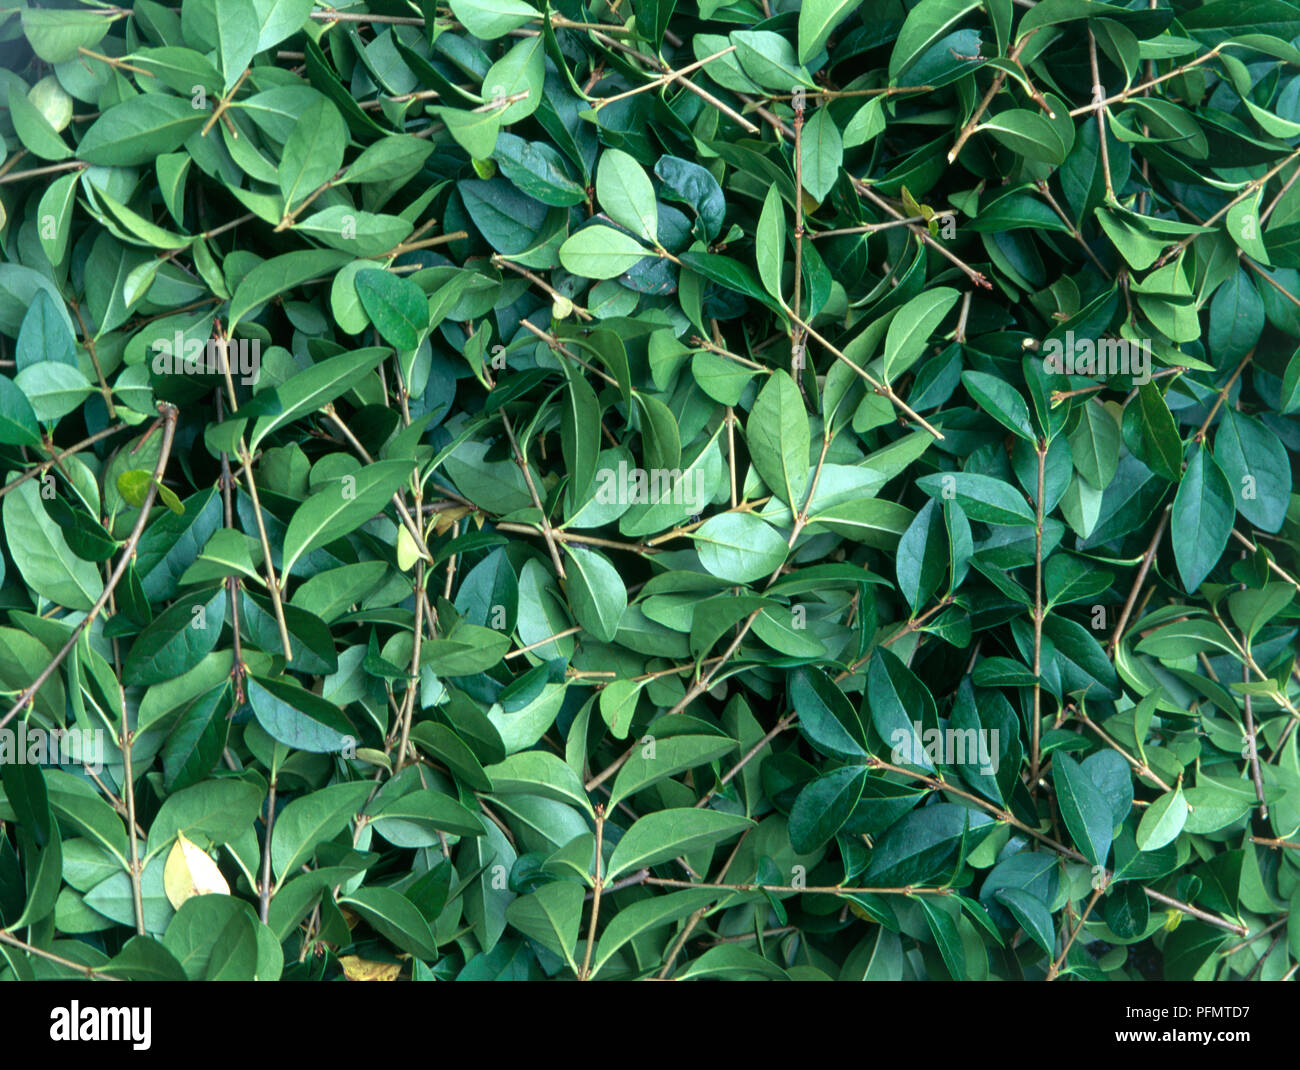 Hedge clippings, close-up - Stock Image